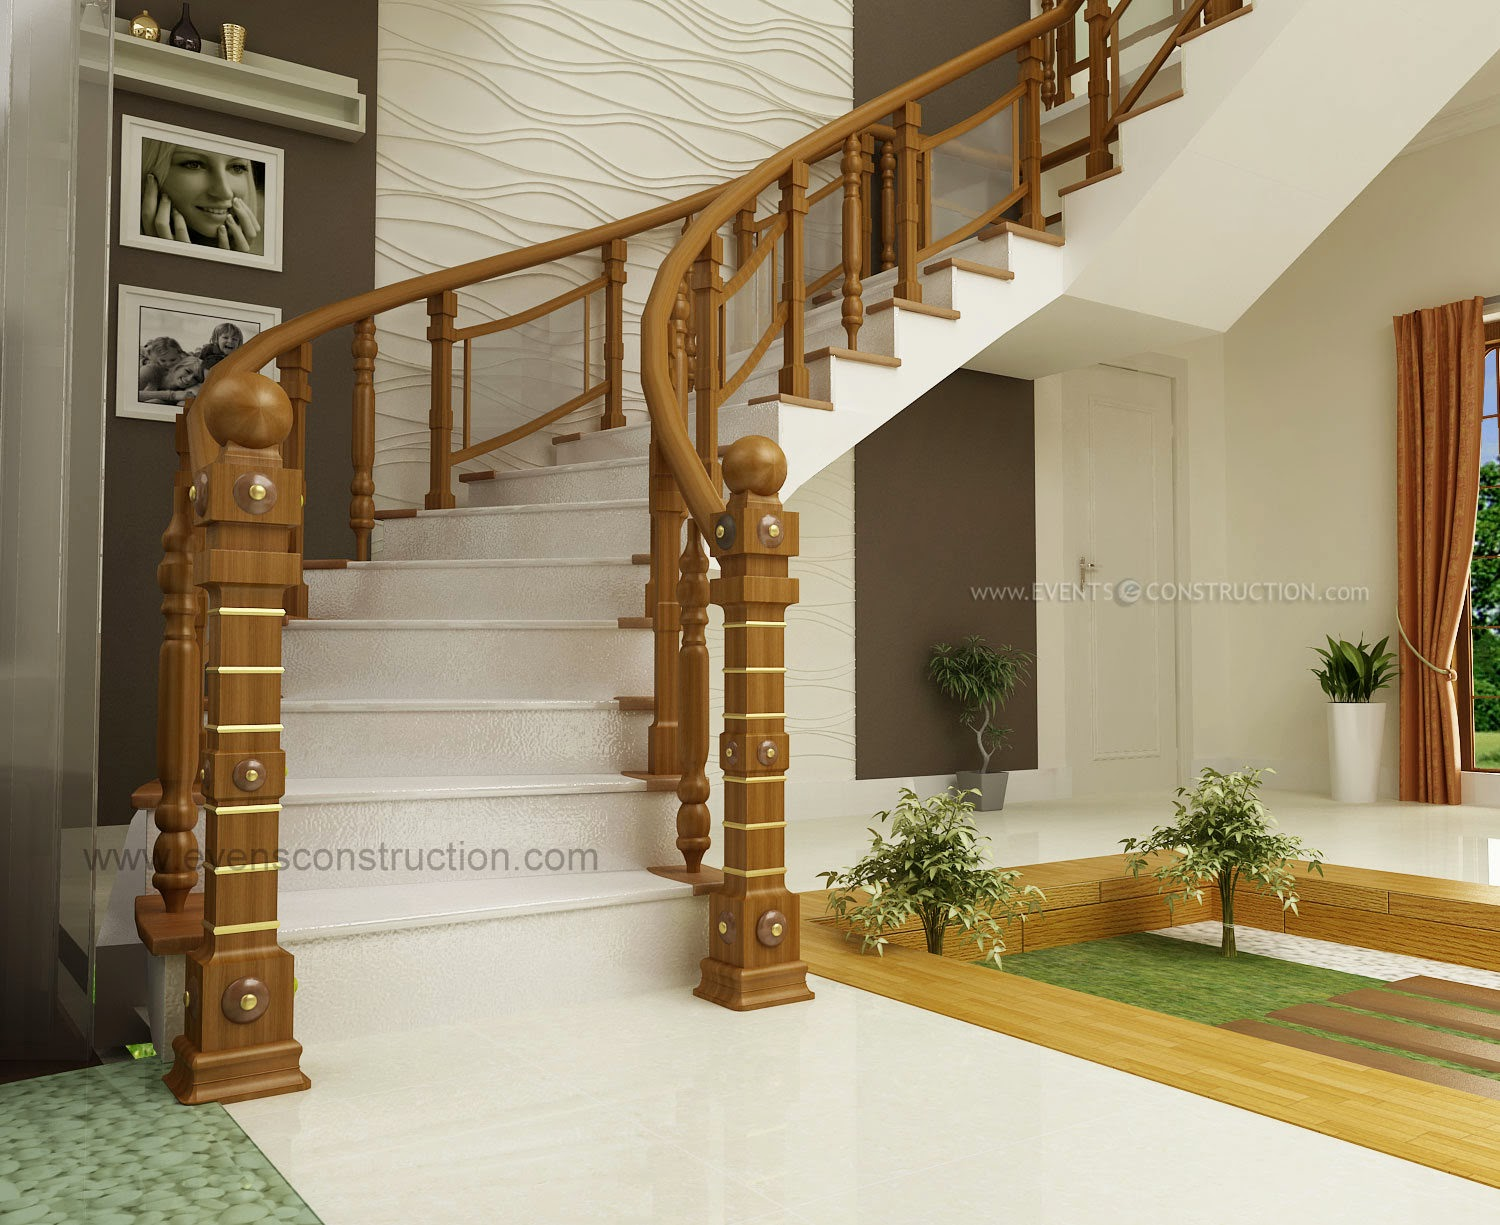 Wood Stair Railing Models 50 Design Secrets Download | Living Room Railing Design | Balcony | Stair Case | Flooring | Step Down | Wrought Iron